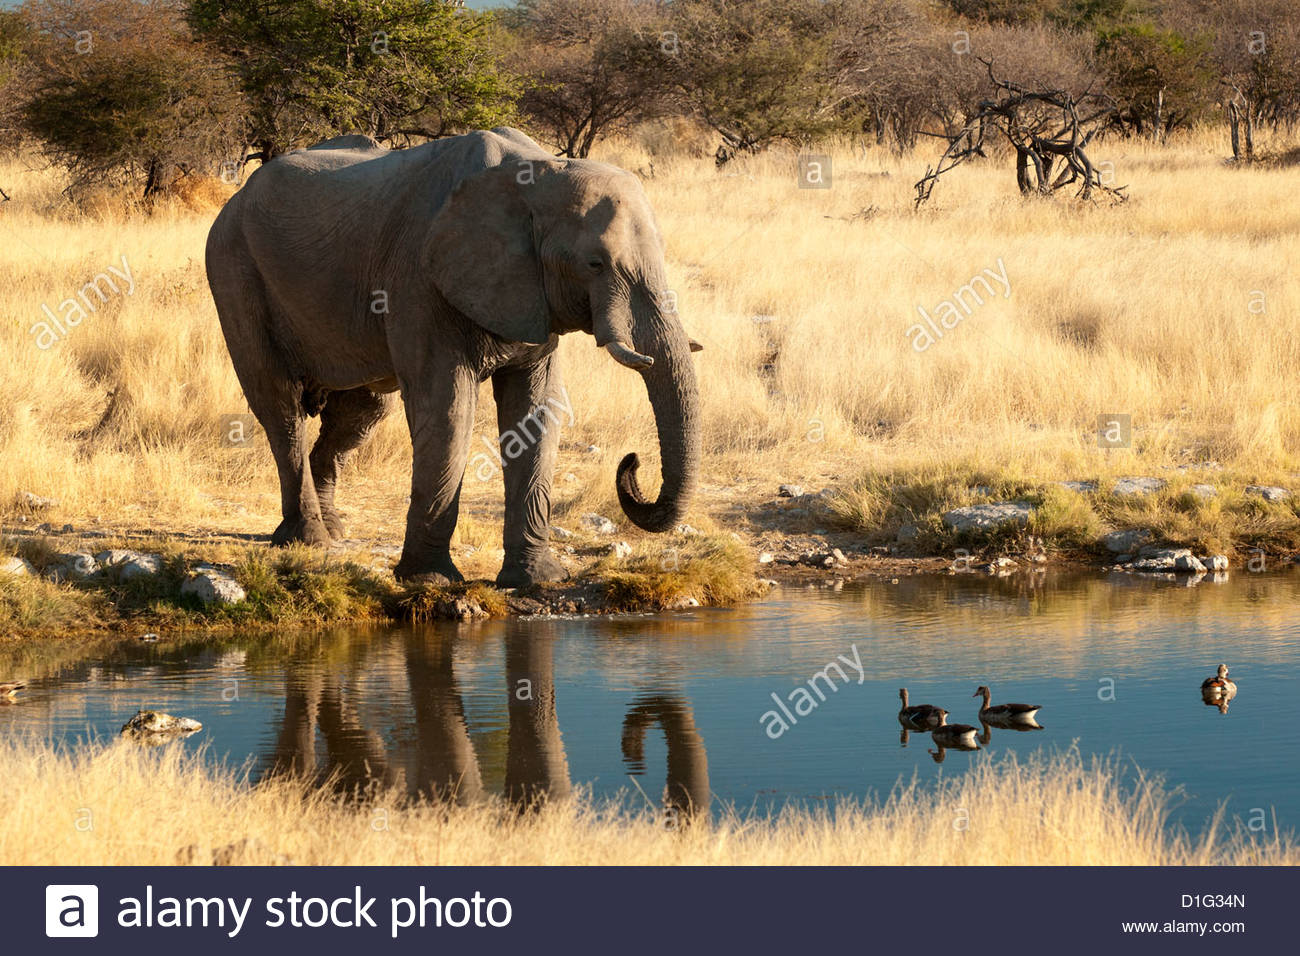 African elephant (Loxodonta africana) at water hole, world's largest land animal, Etosha National Park, Namibia, - Stock Image